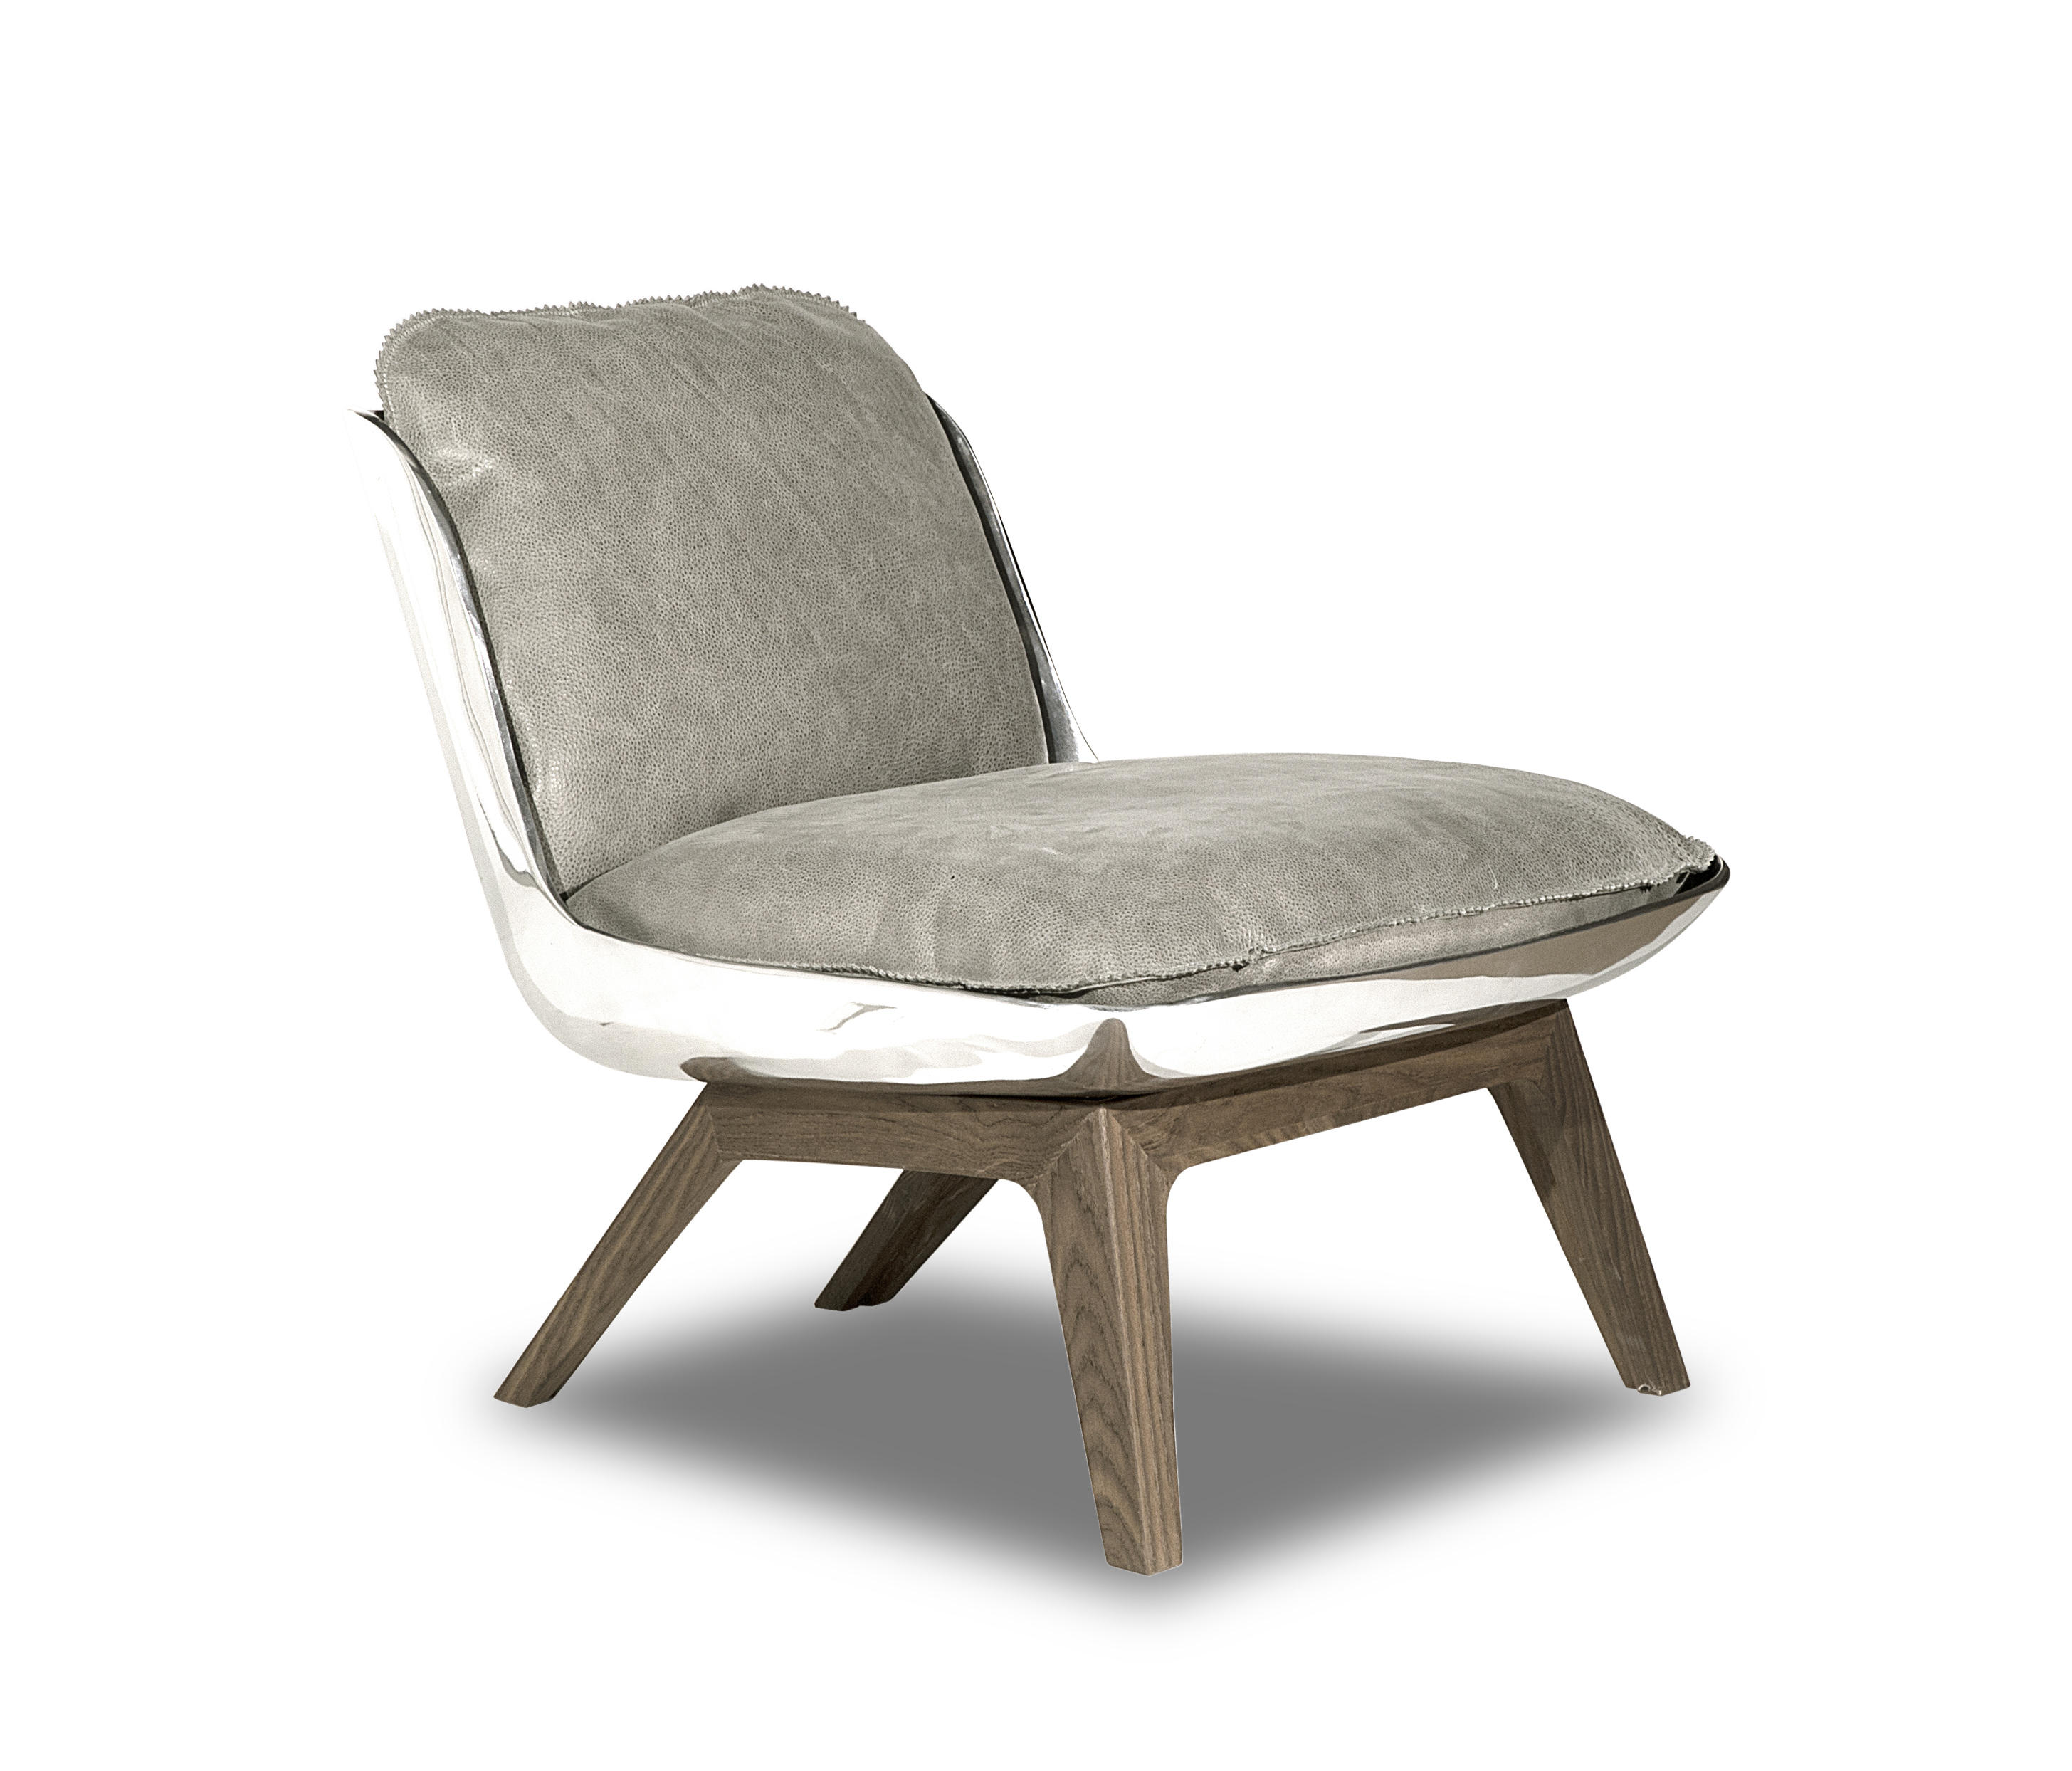 Lounge Fauteuil Houston.Houston Armchair Armchairs From Baxter Architonic